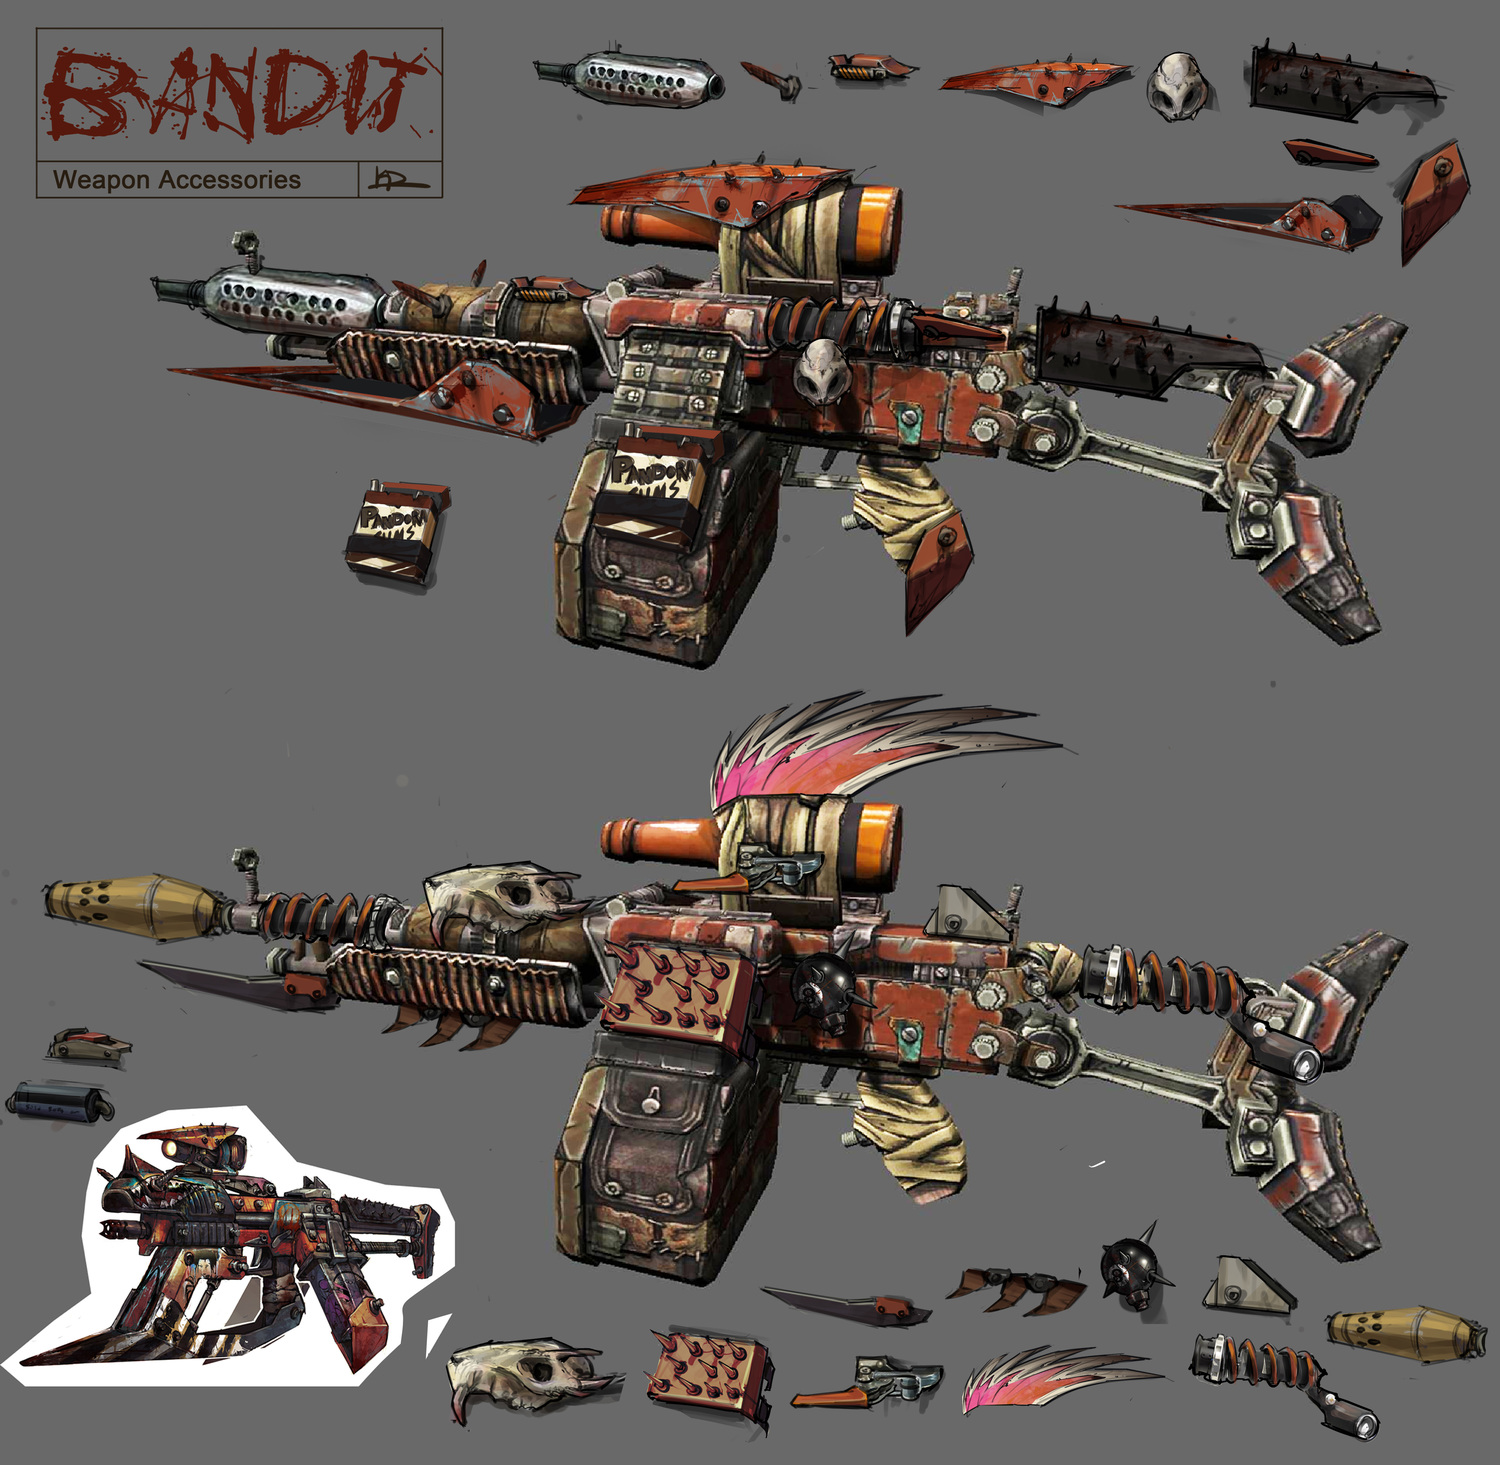 Borderlands 2: Bandit Weapons — Kevin Duc Concept Design Borderlands 3